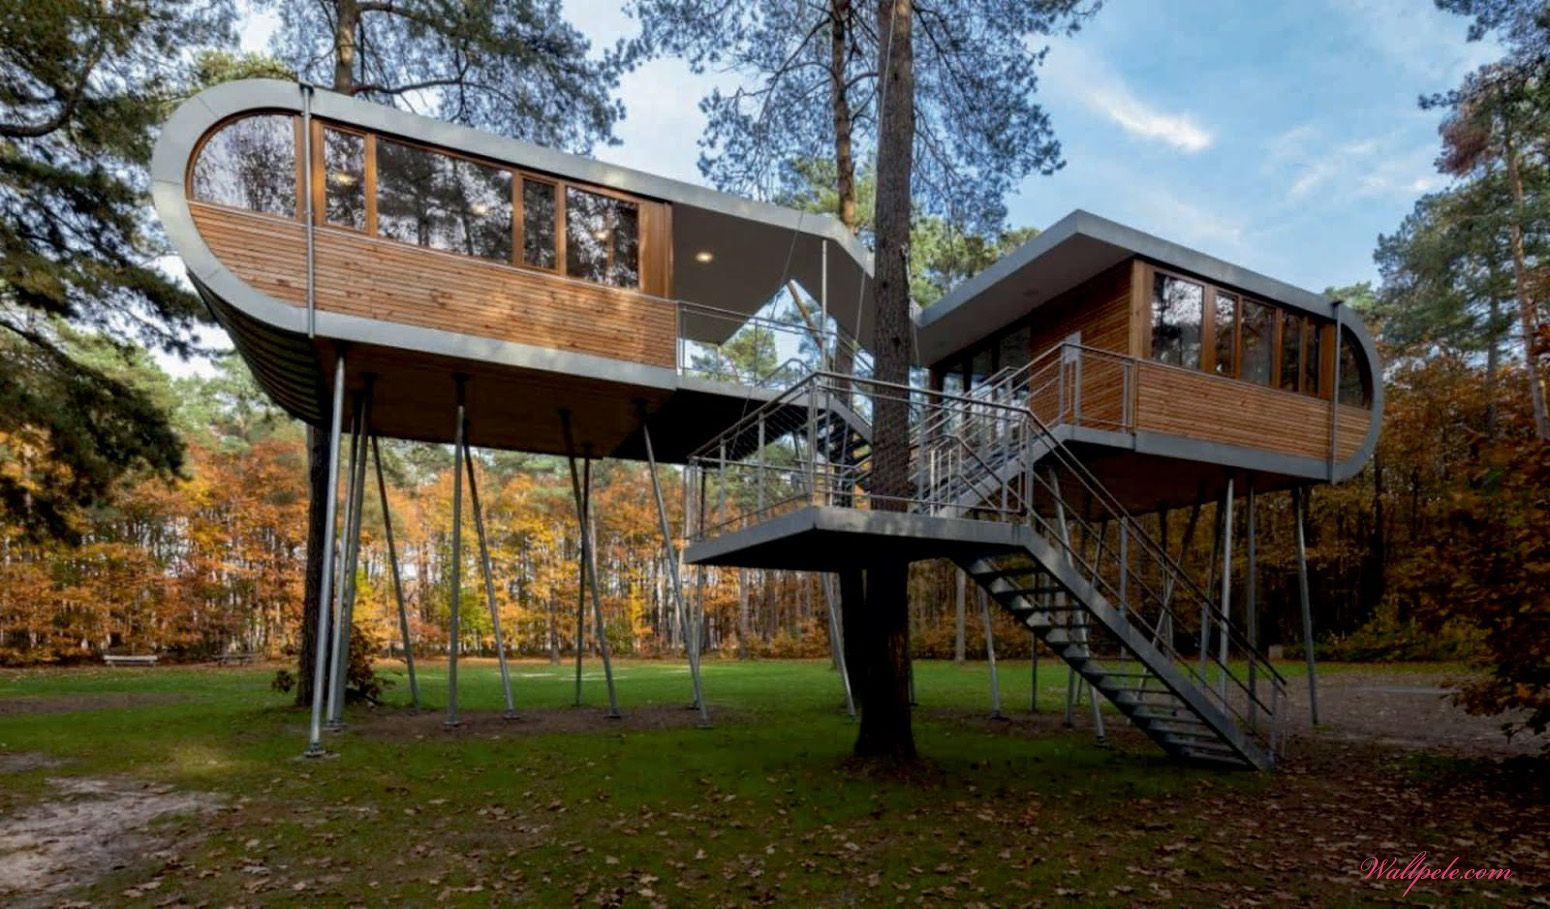 make it spectacularly your own the tree house hechteleksel belgium by baumraum for a love shack needs more trees modern tree house plans k90 modern